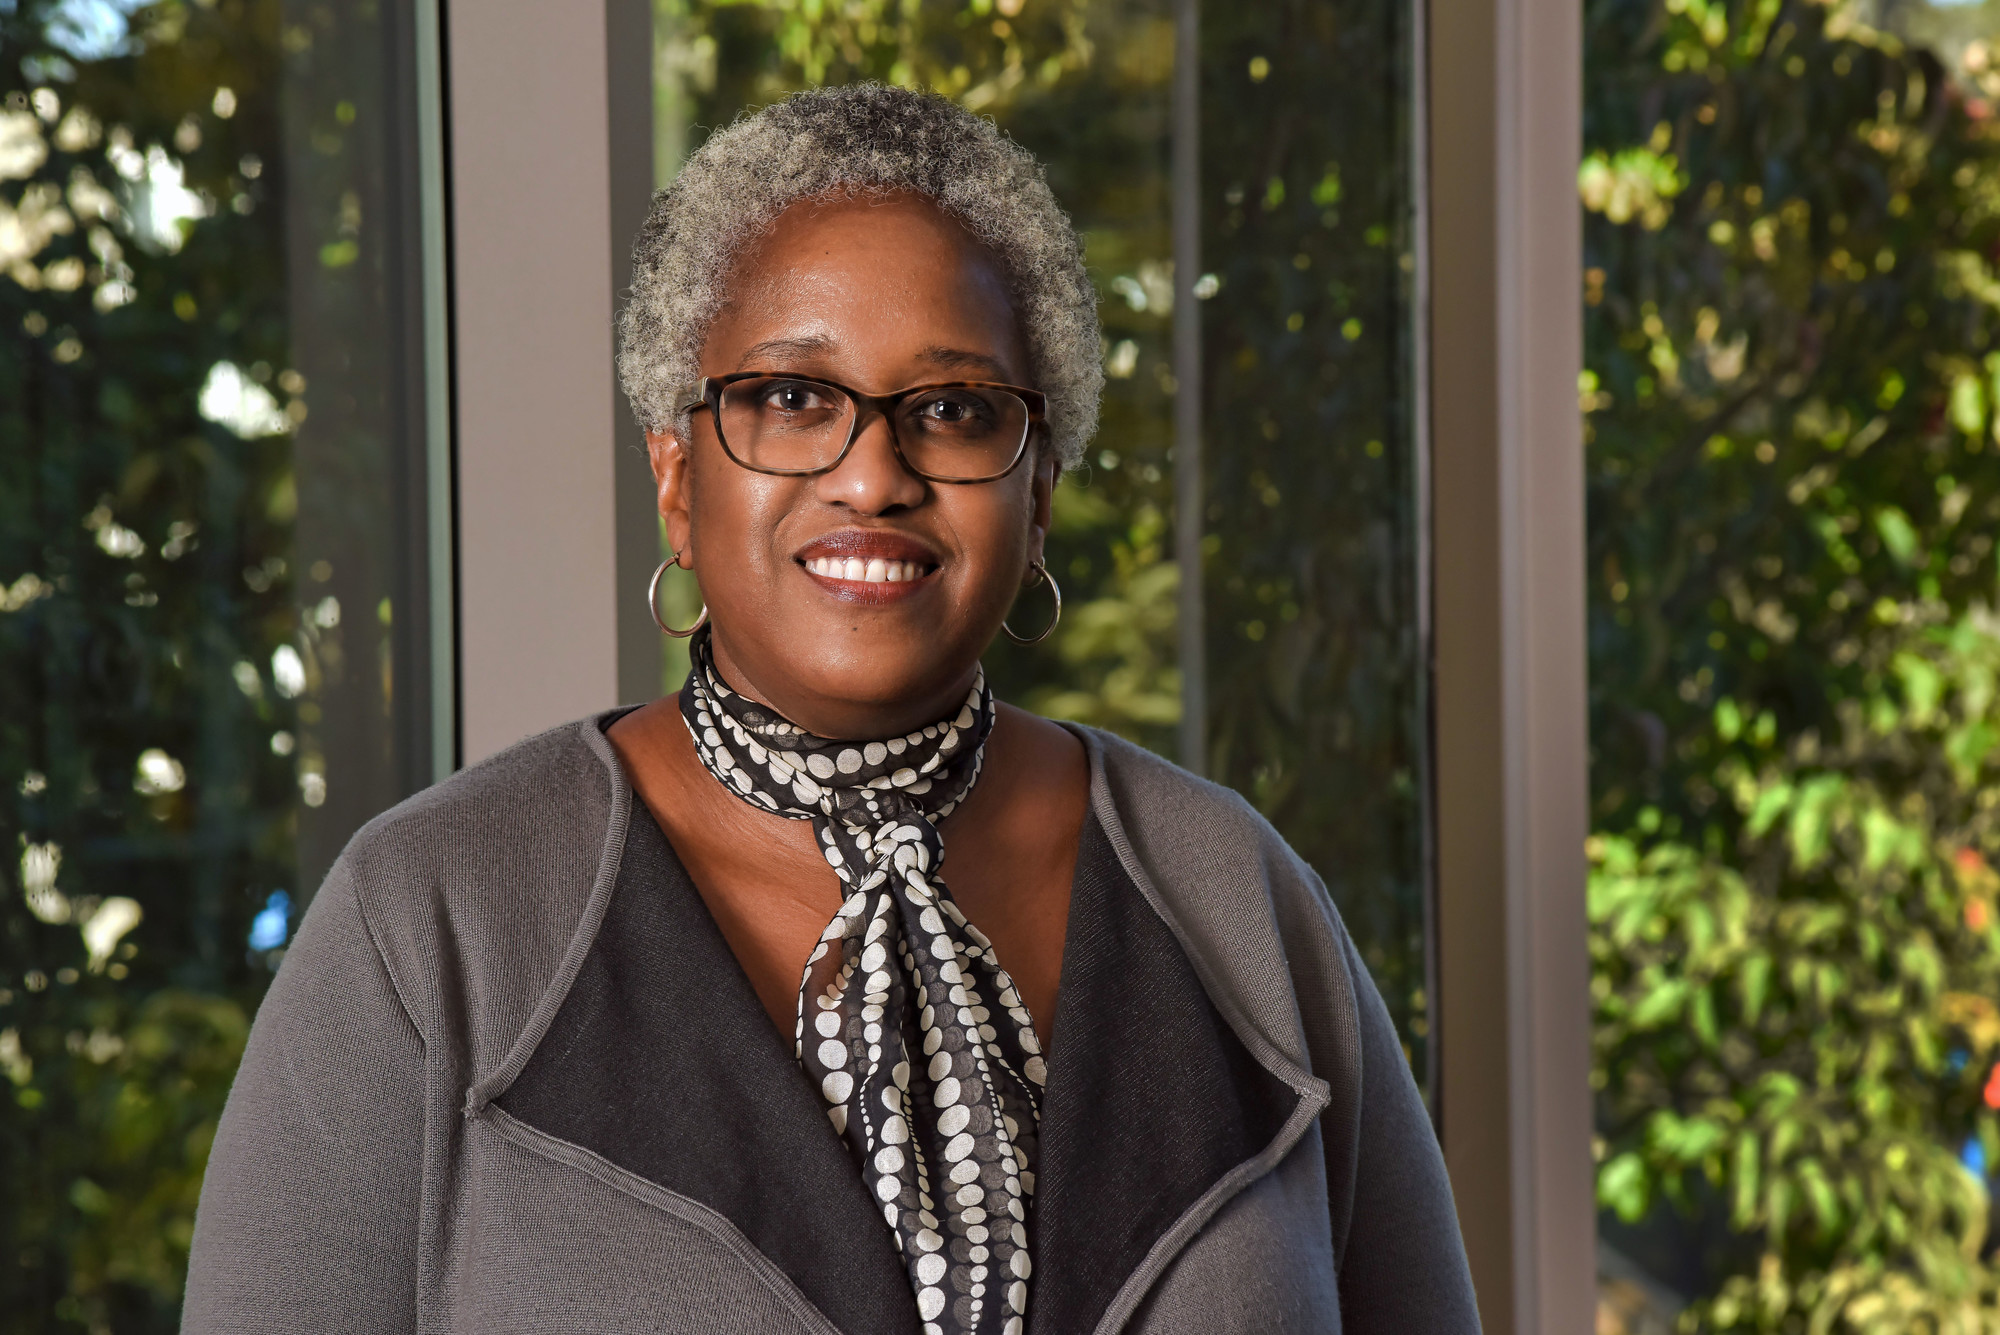 Dr. White is a leading scholar on a wide range of subjects, including race, gender, and inequality